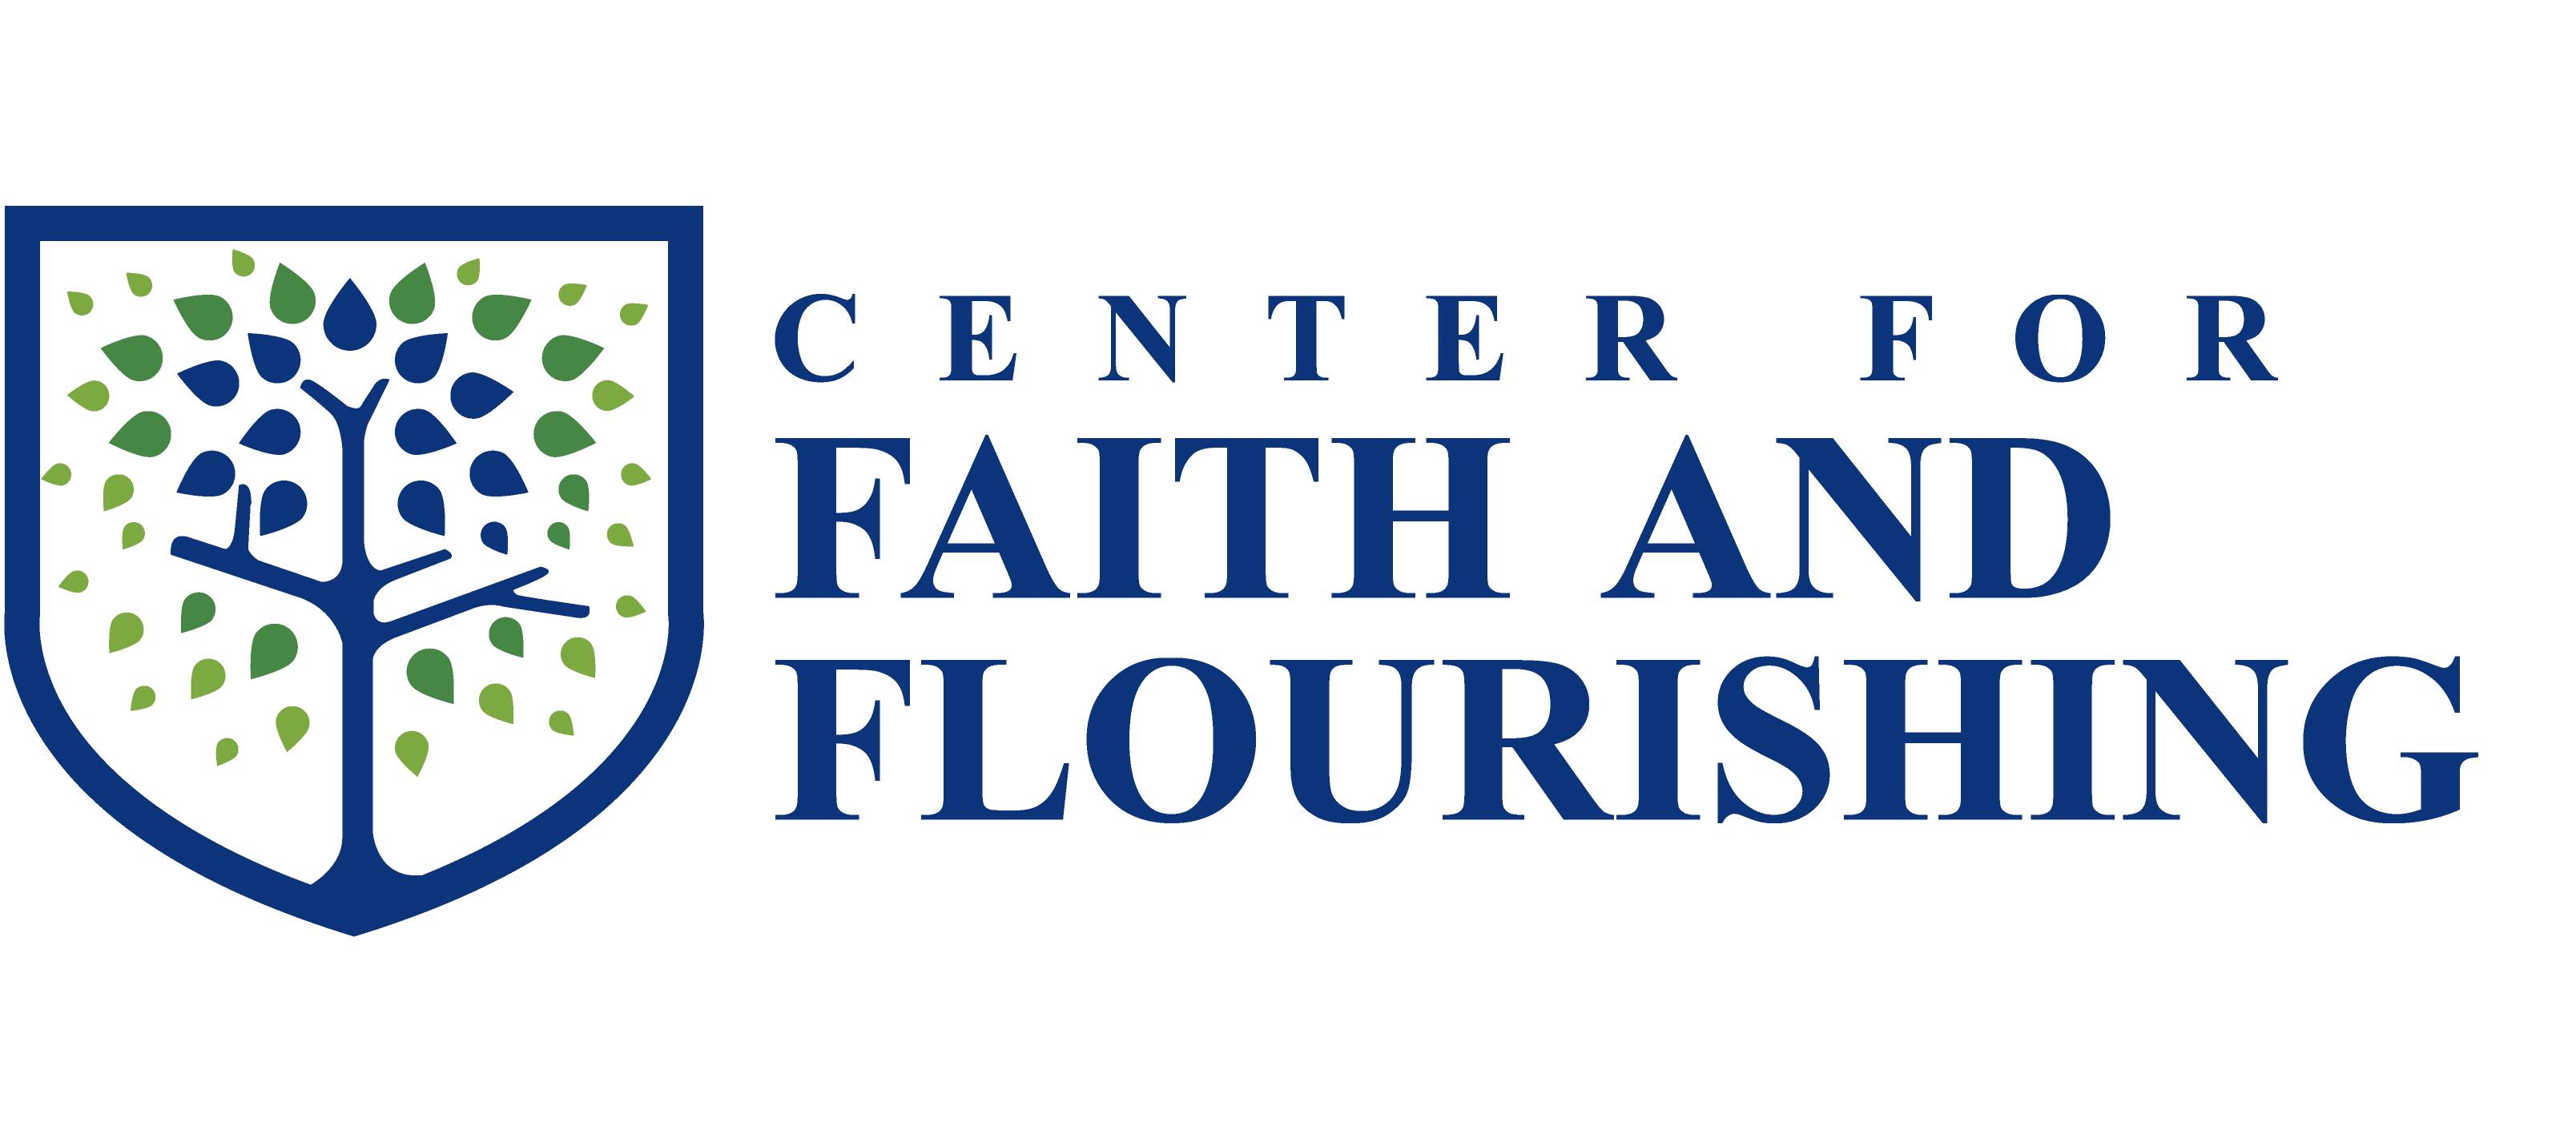 Center for Faith and Flourishing